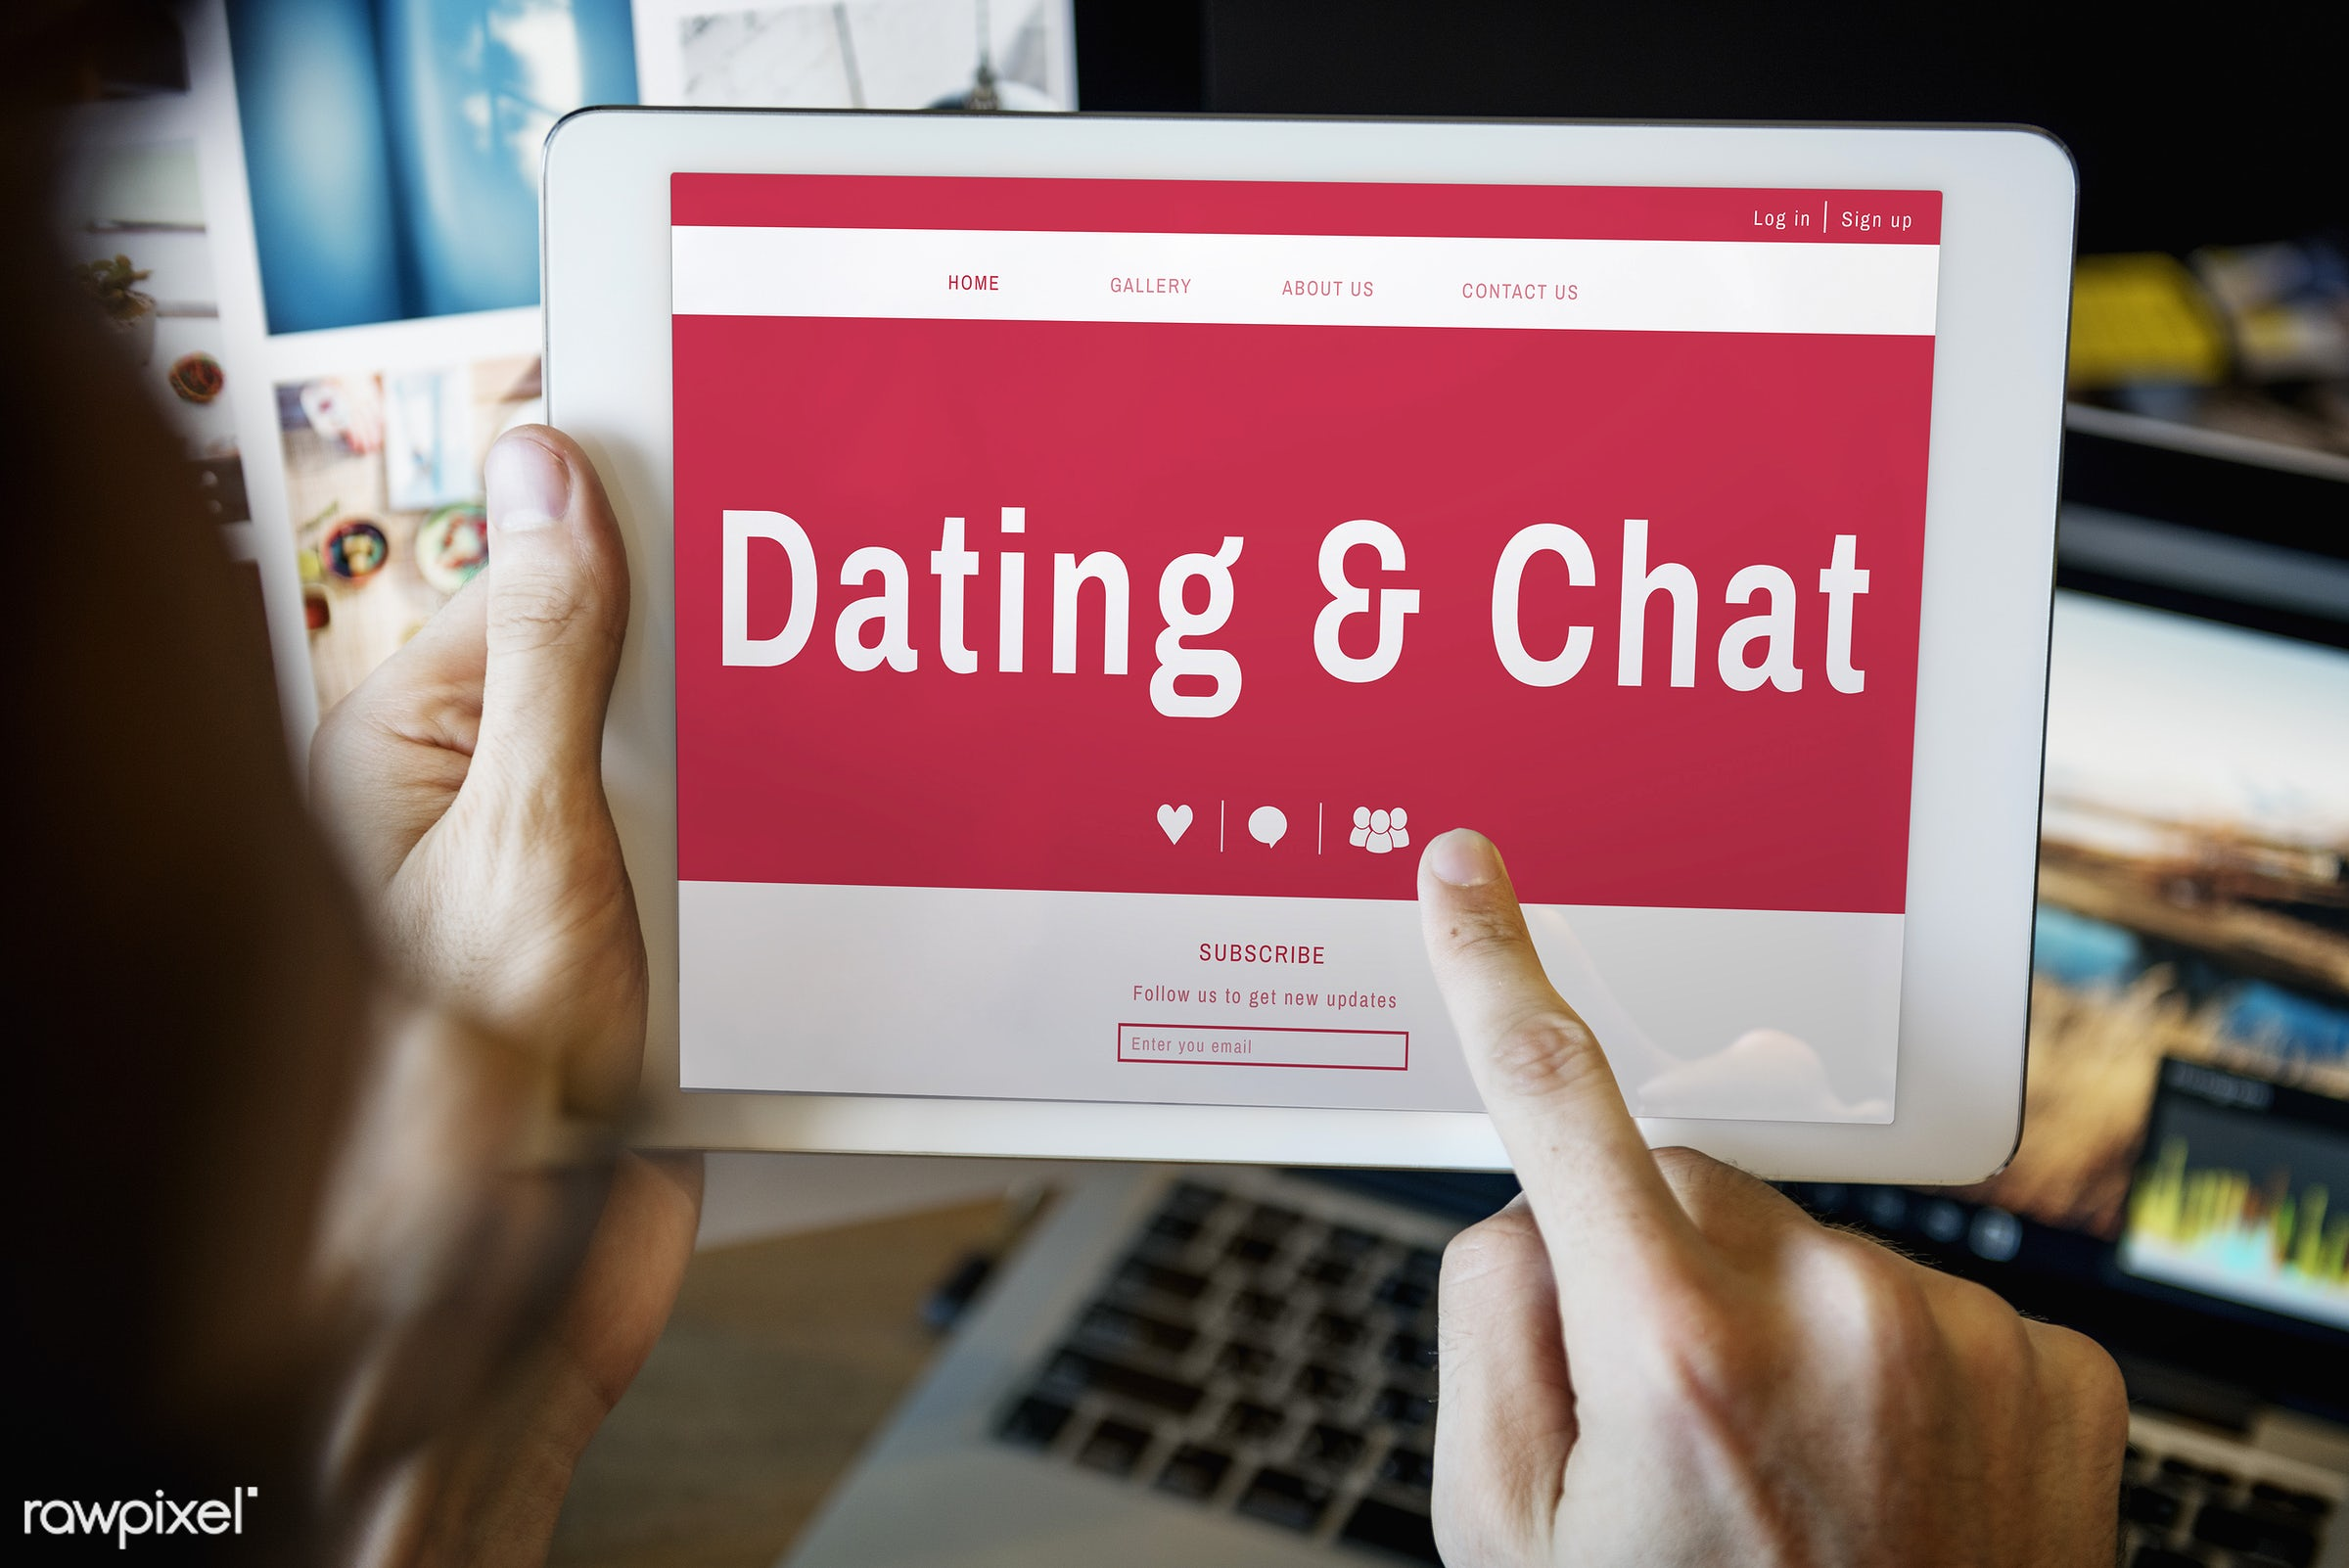 advice, blind date, browsing, chat, connect, connection, creative occupation, dating, dating chat, dating tips, desk,...